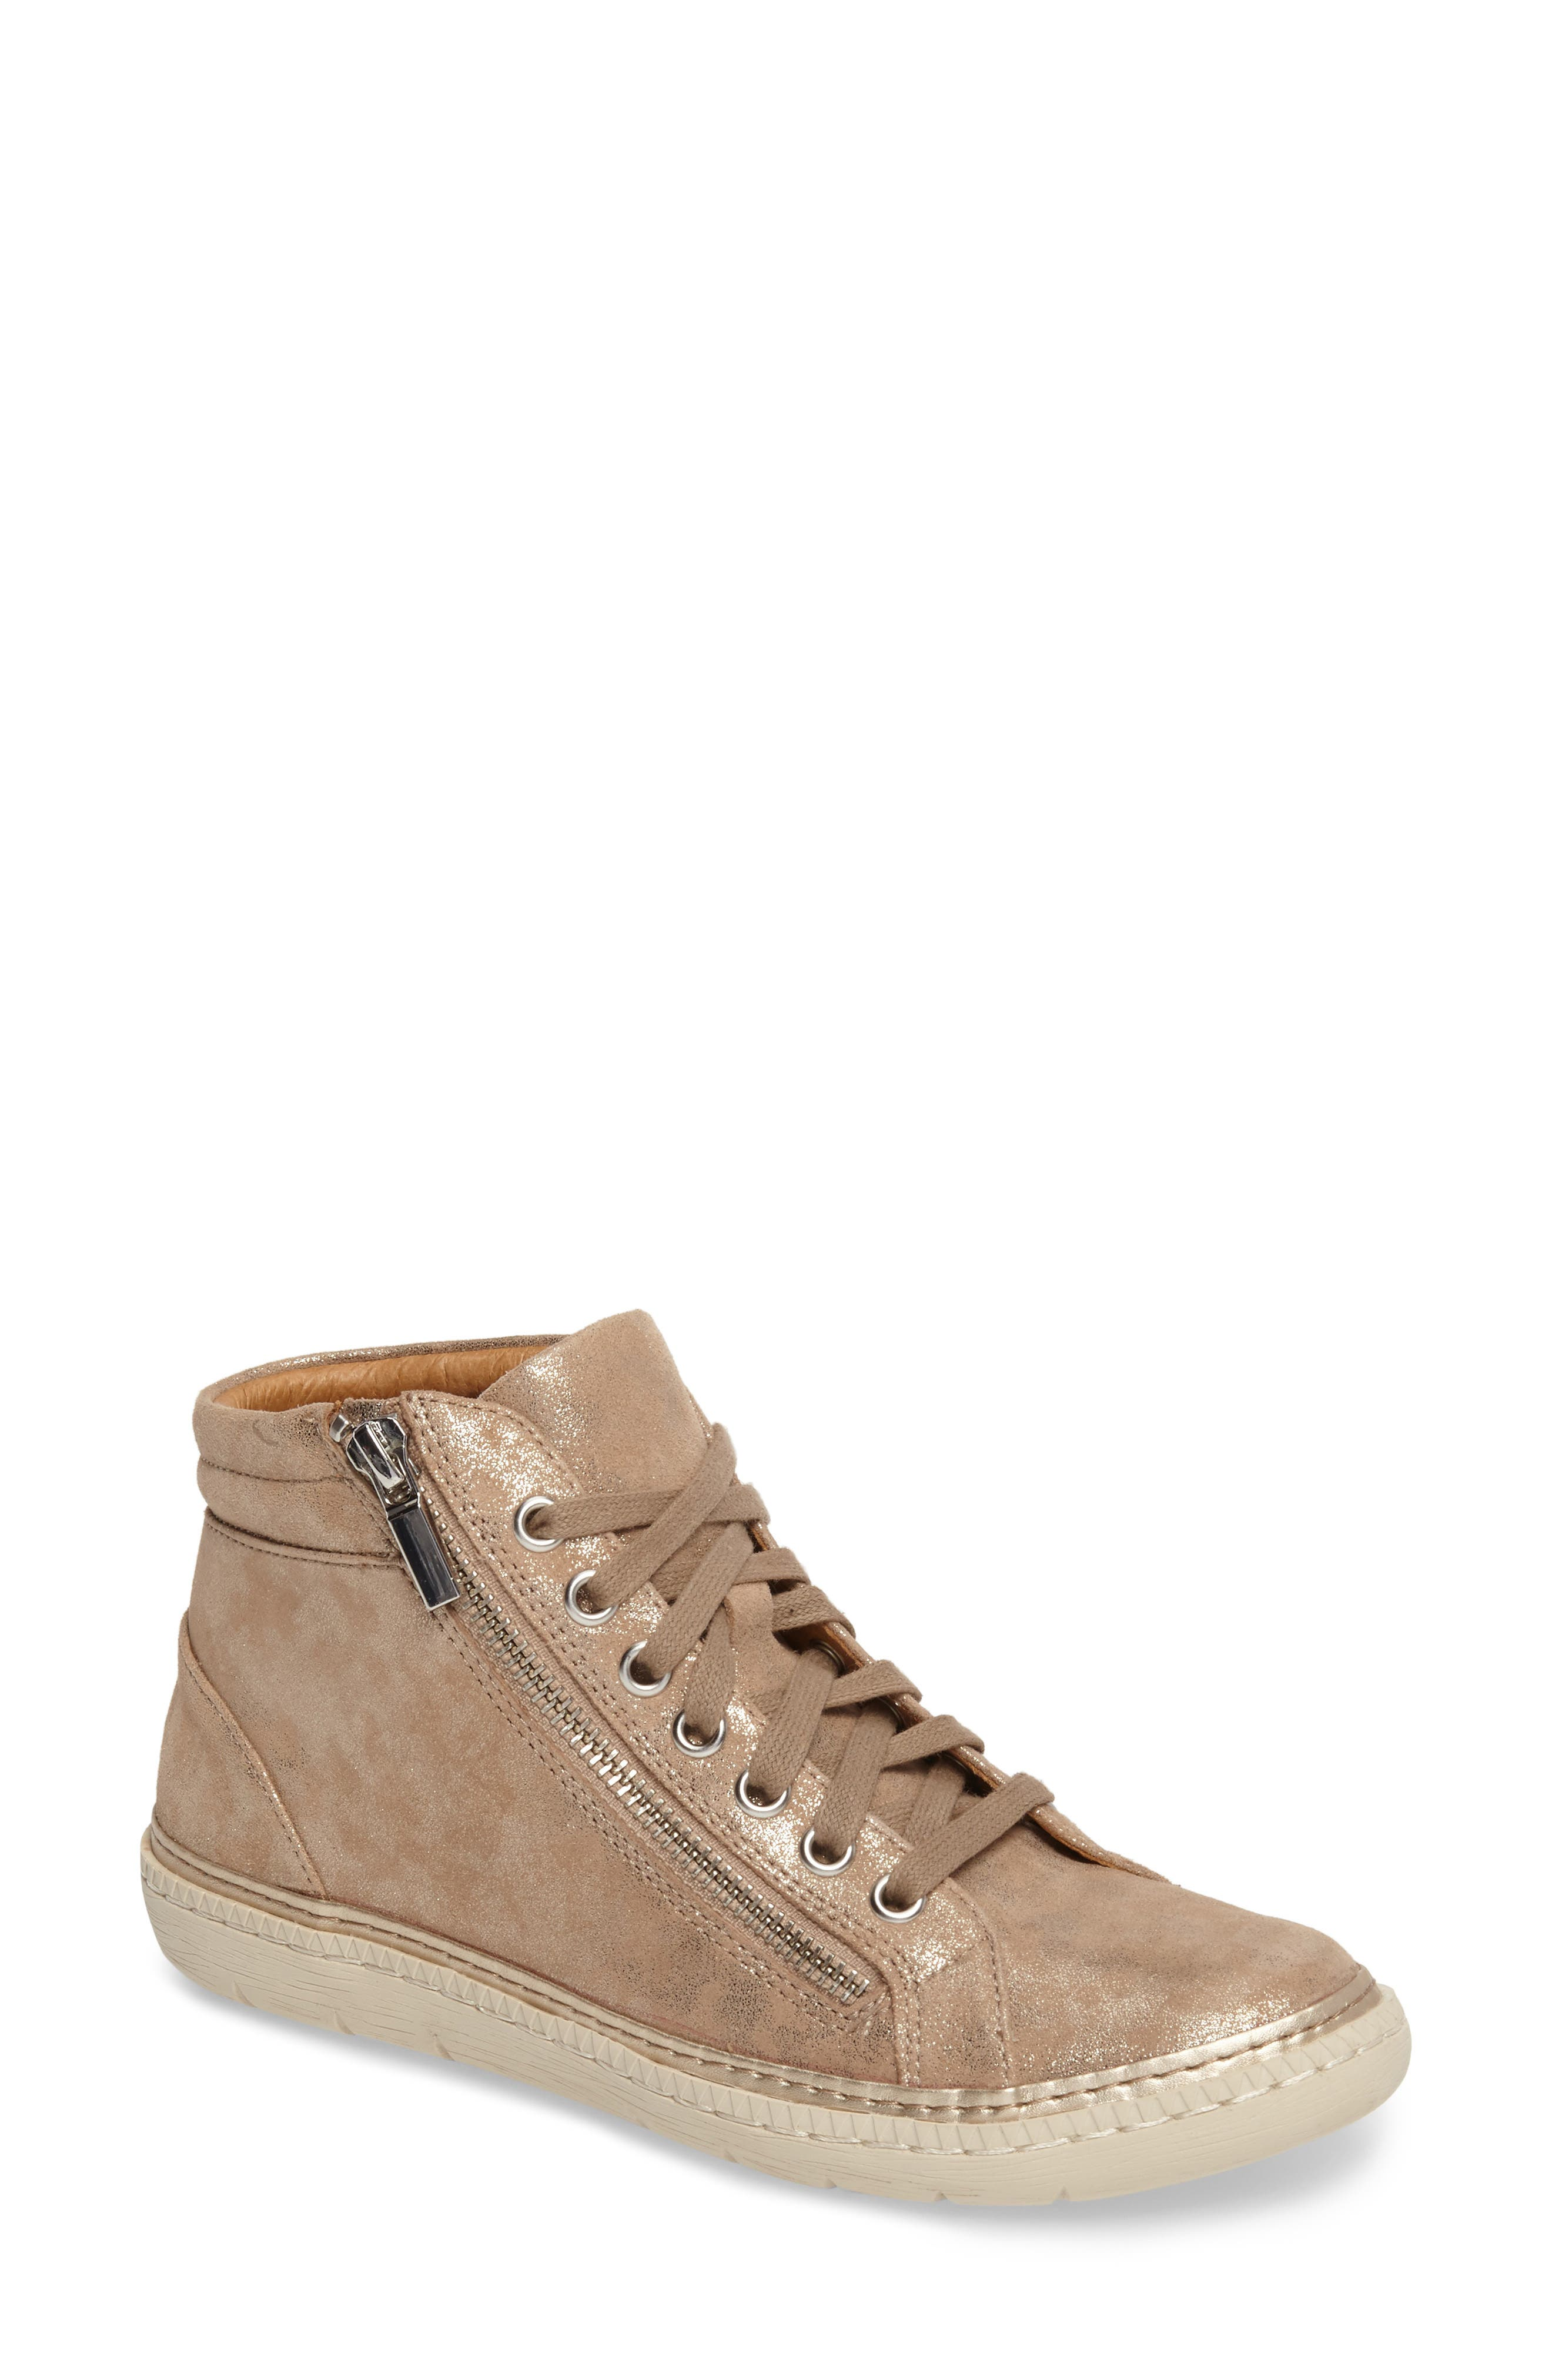 Annaleigh High Top Sneaker,                         Main,                         color, ANTHRACITE FOIL SUEDE